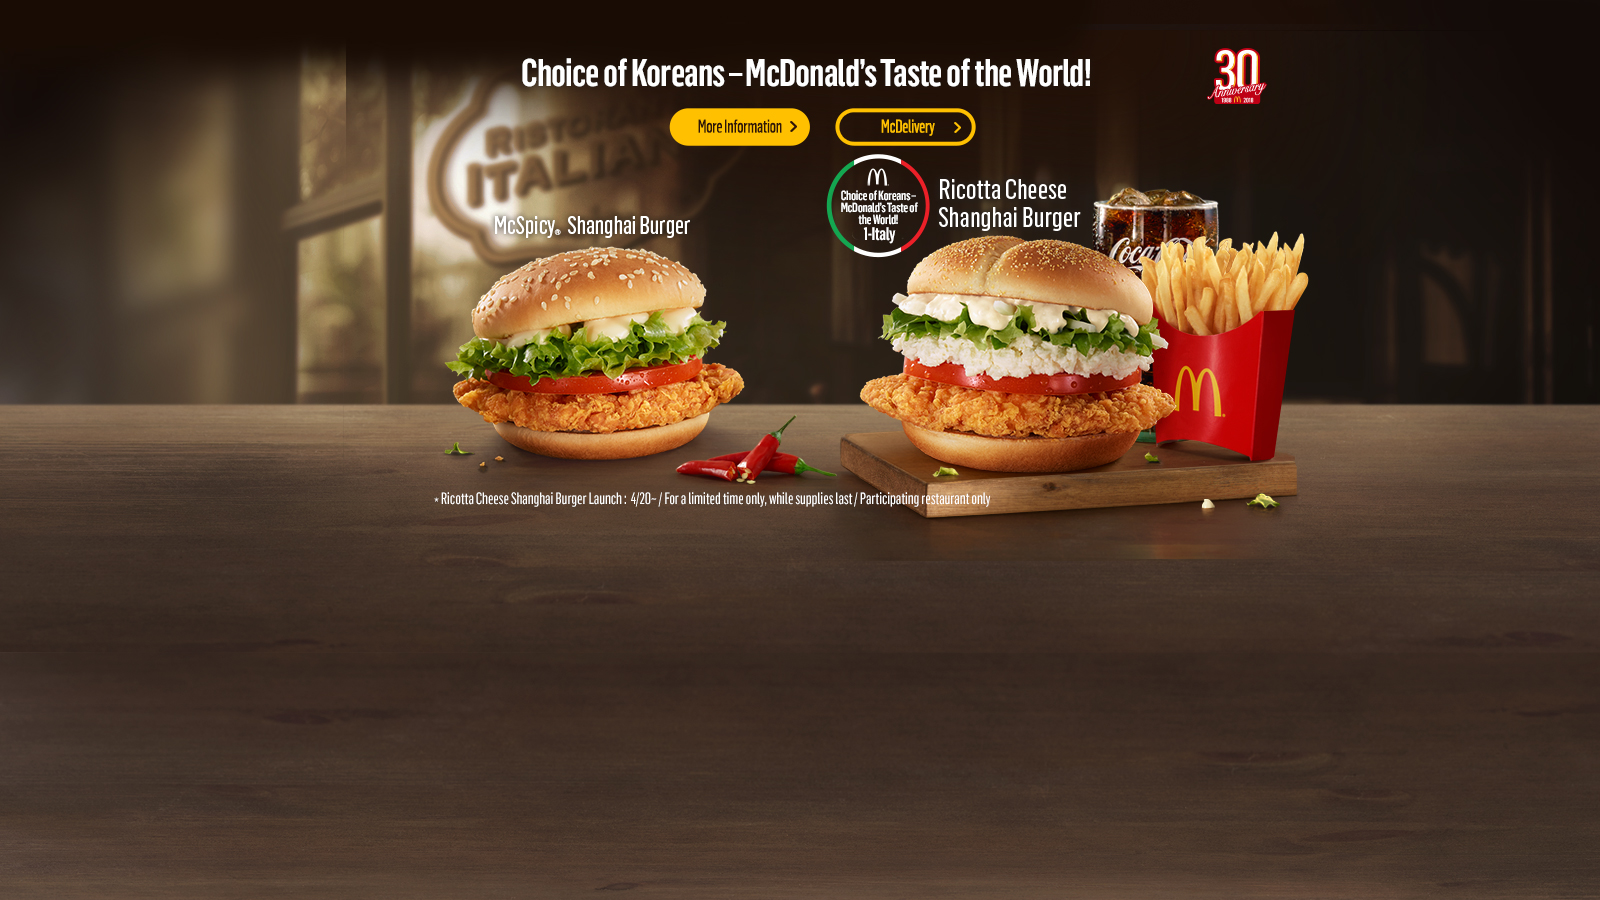 Choice of Koreans – McDonald's Taste of the World! Ricotta Cheese Shanghai Burger